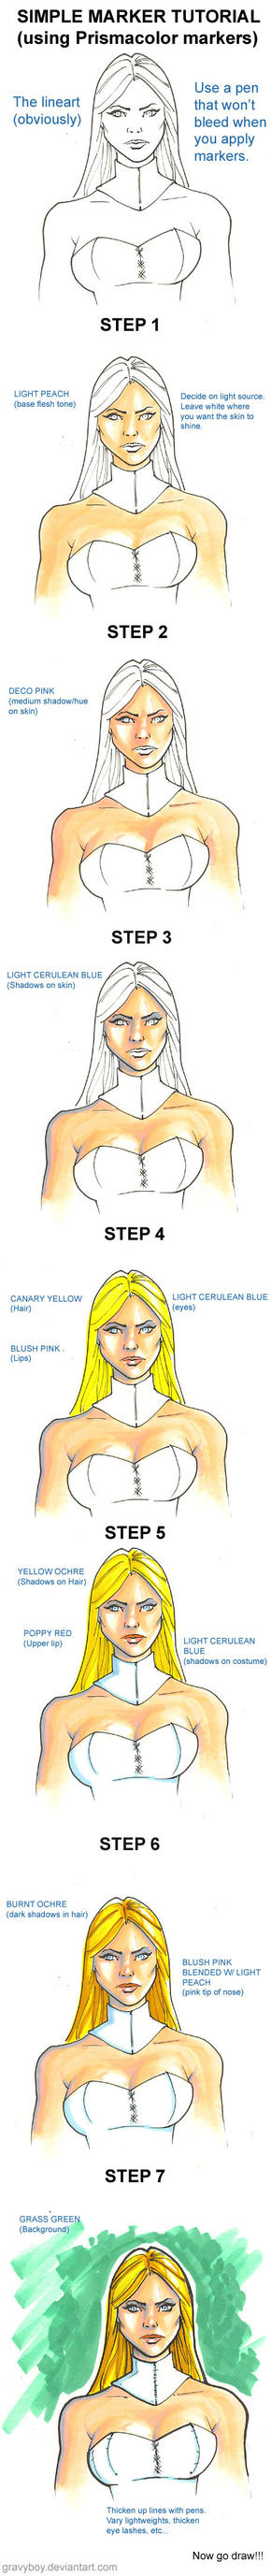 Simple Marker Tutorial by gravyboy